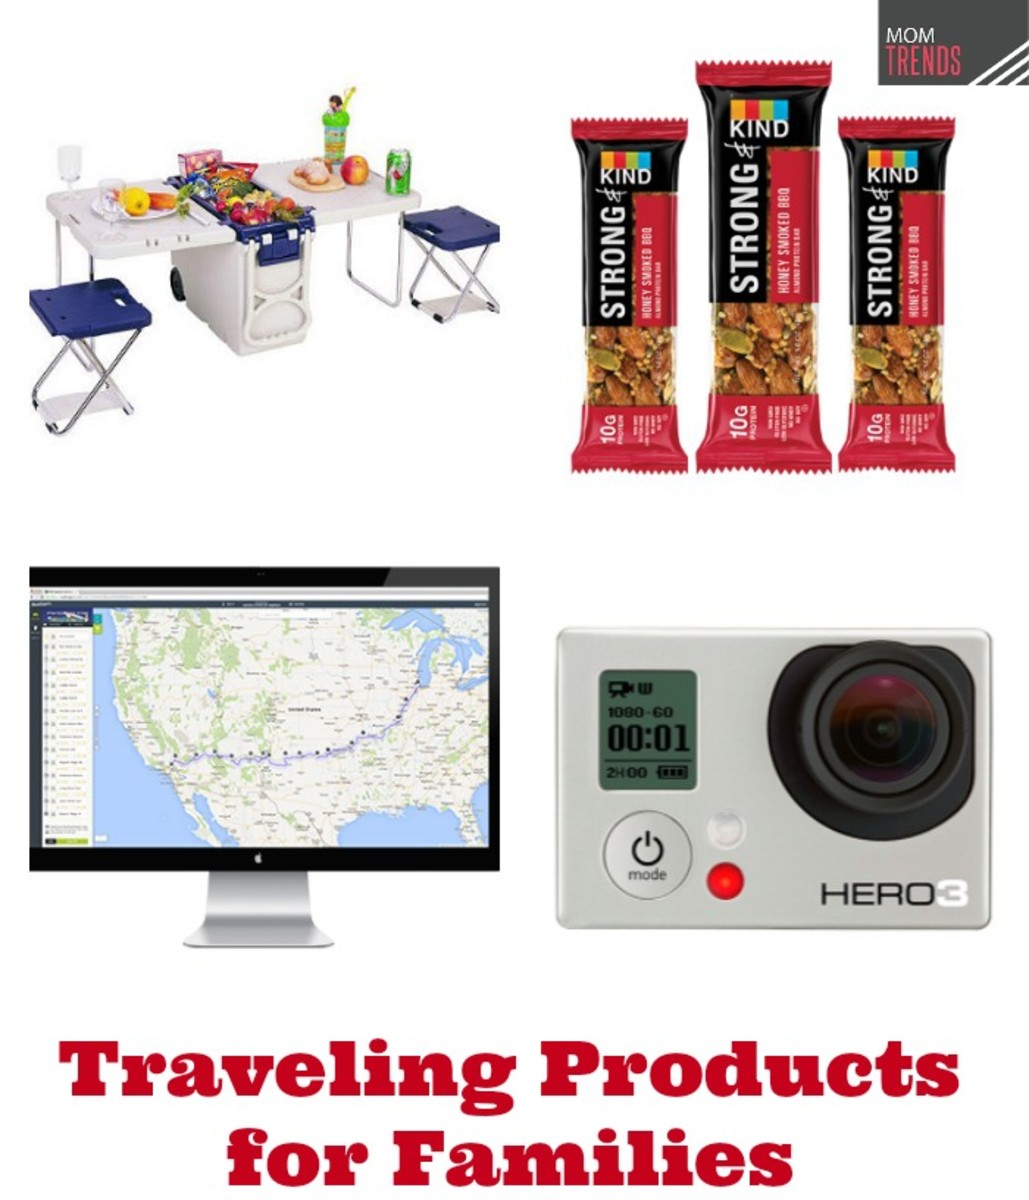 5 Best Traveling Products for Families .jpg.jpg